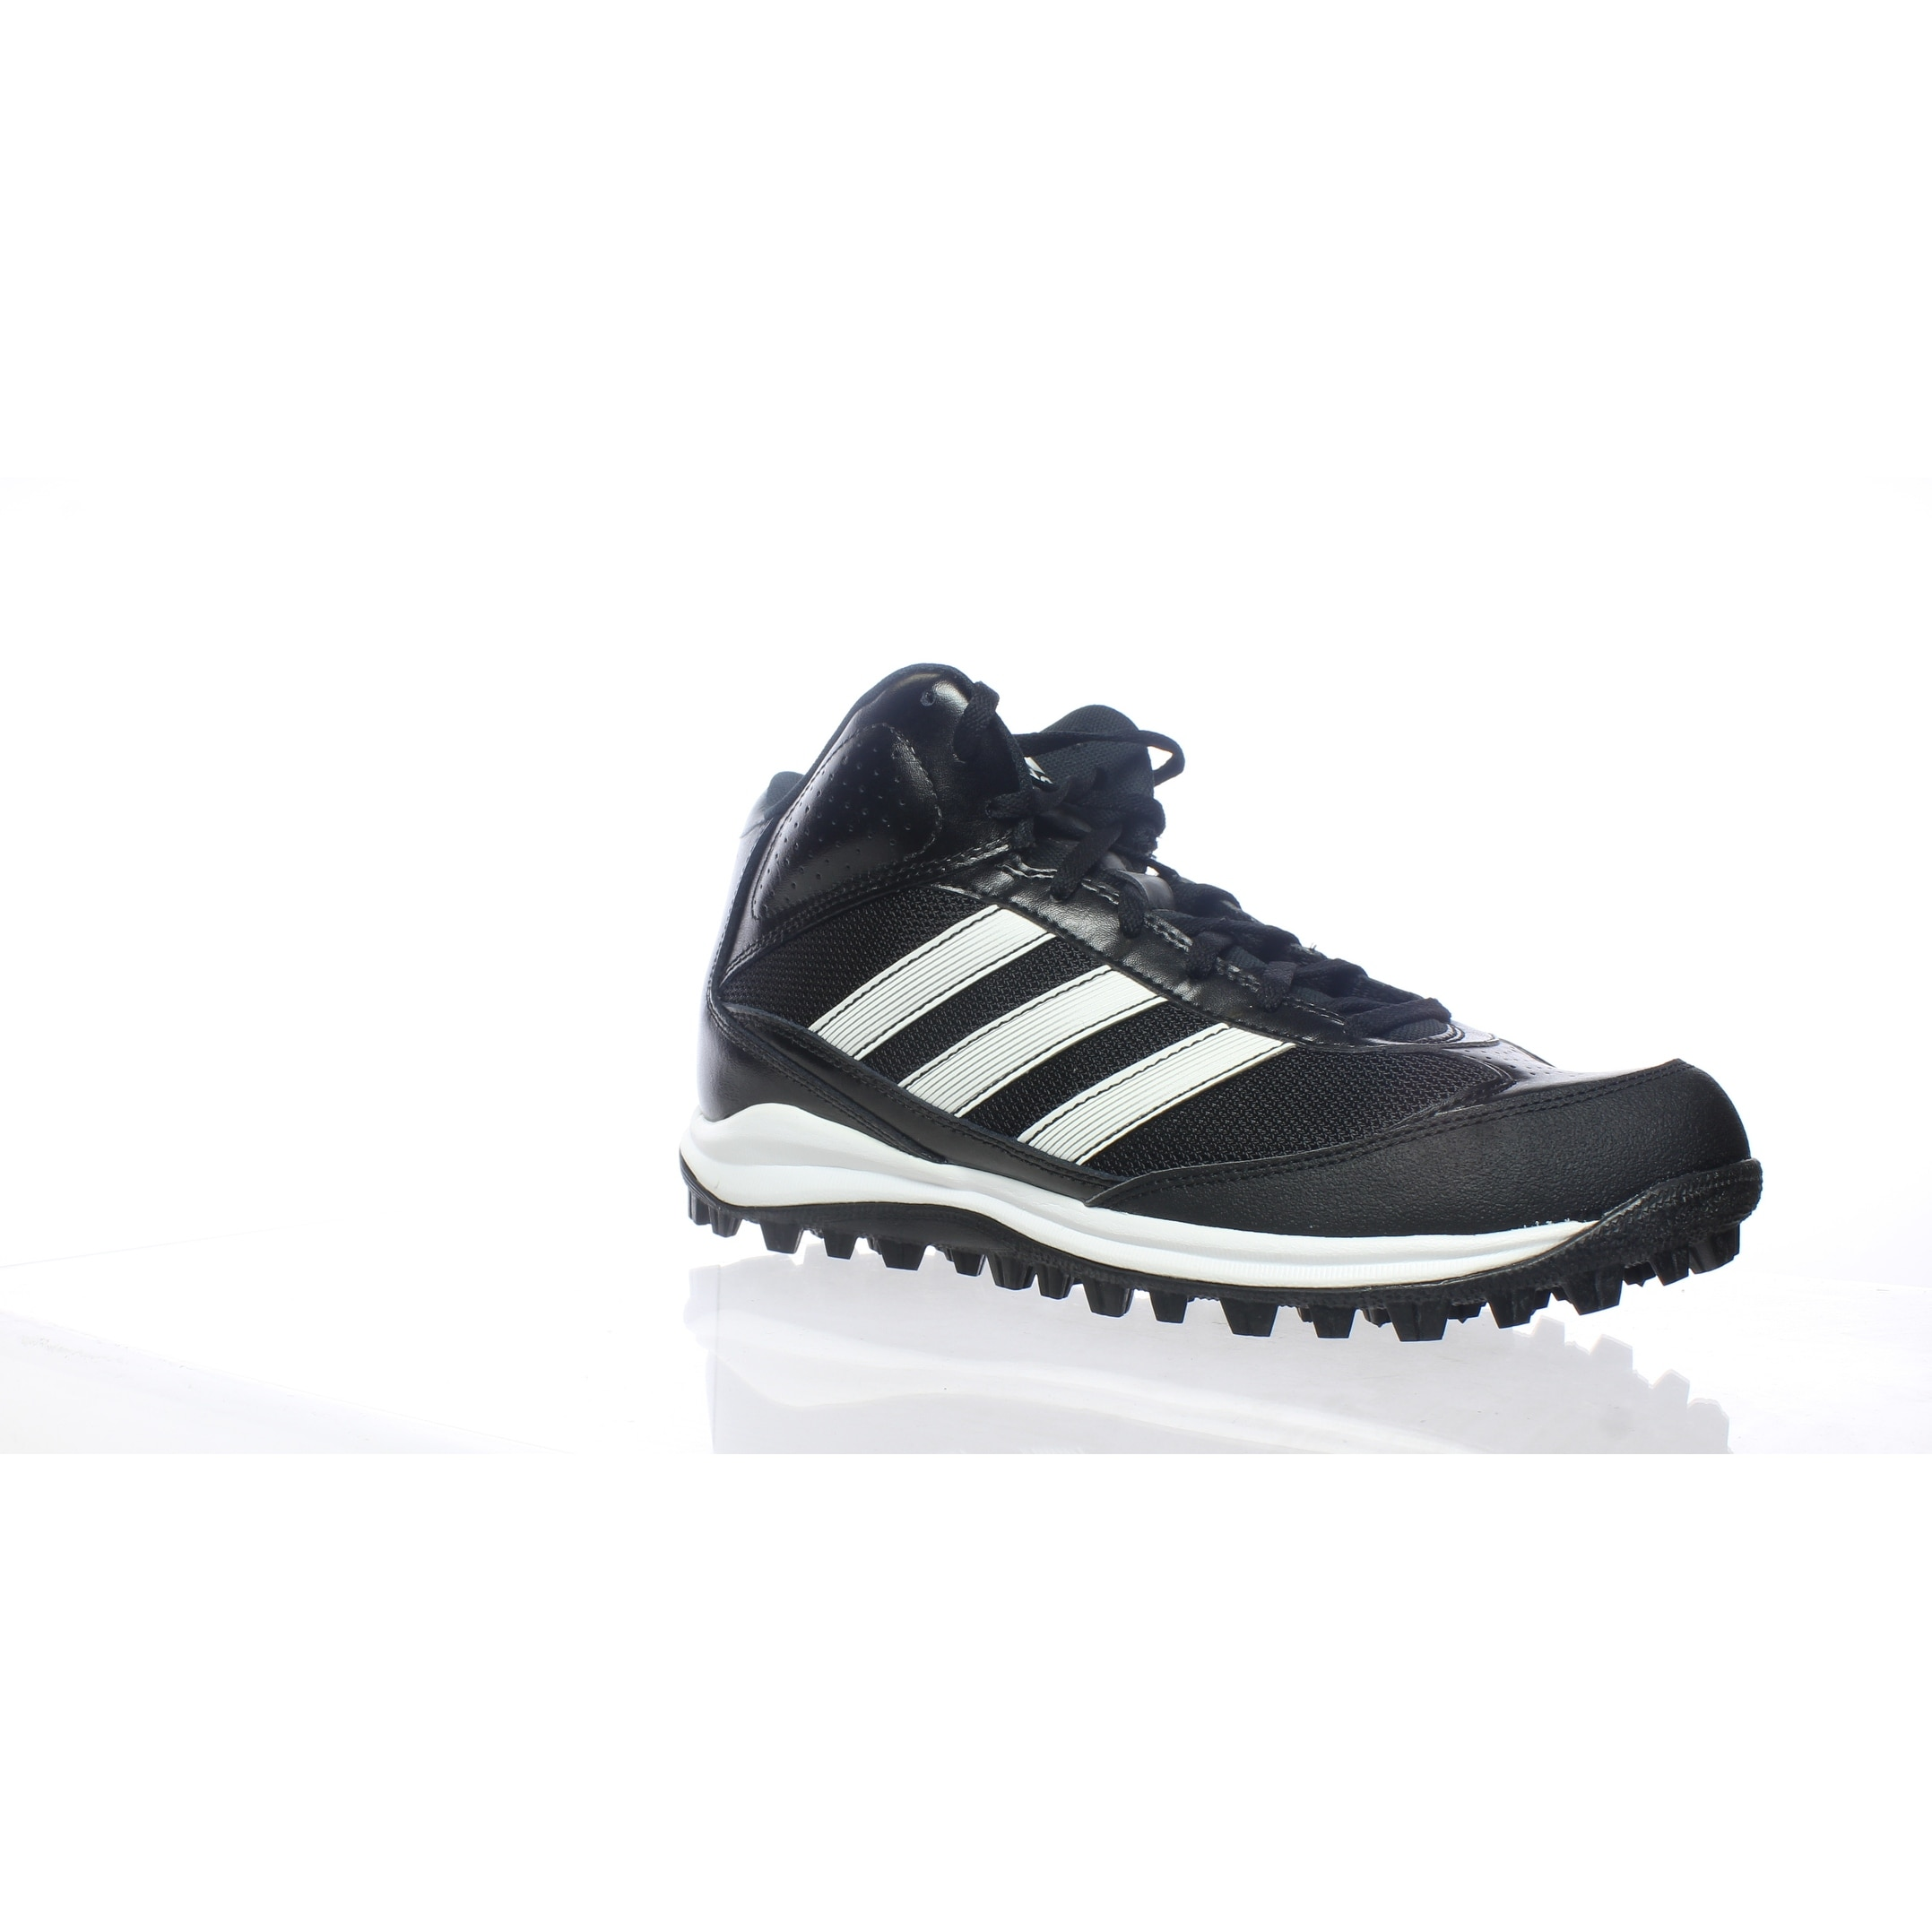 675e23061 Shop Adidas Mens Turf Hog Lx Mid Black Football Cleats Size 10 - Free  Shipping Today - Overstock - 27986470